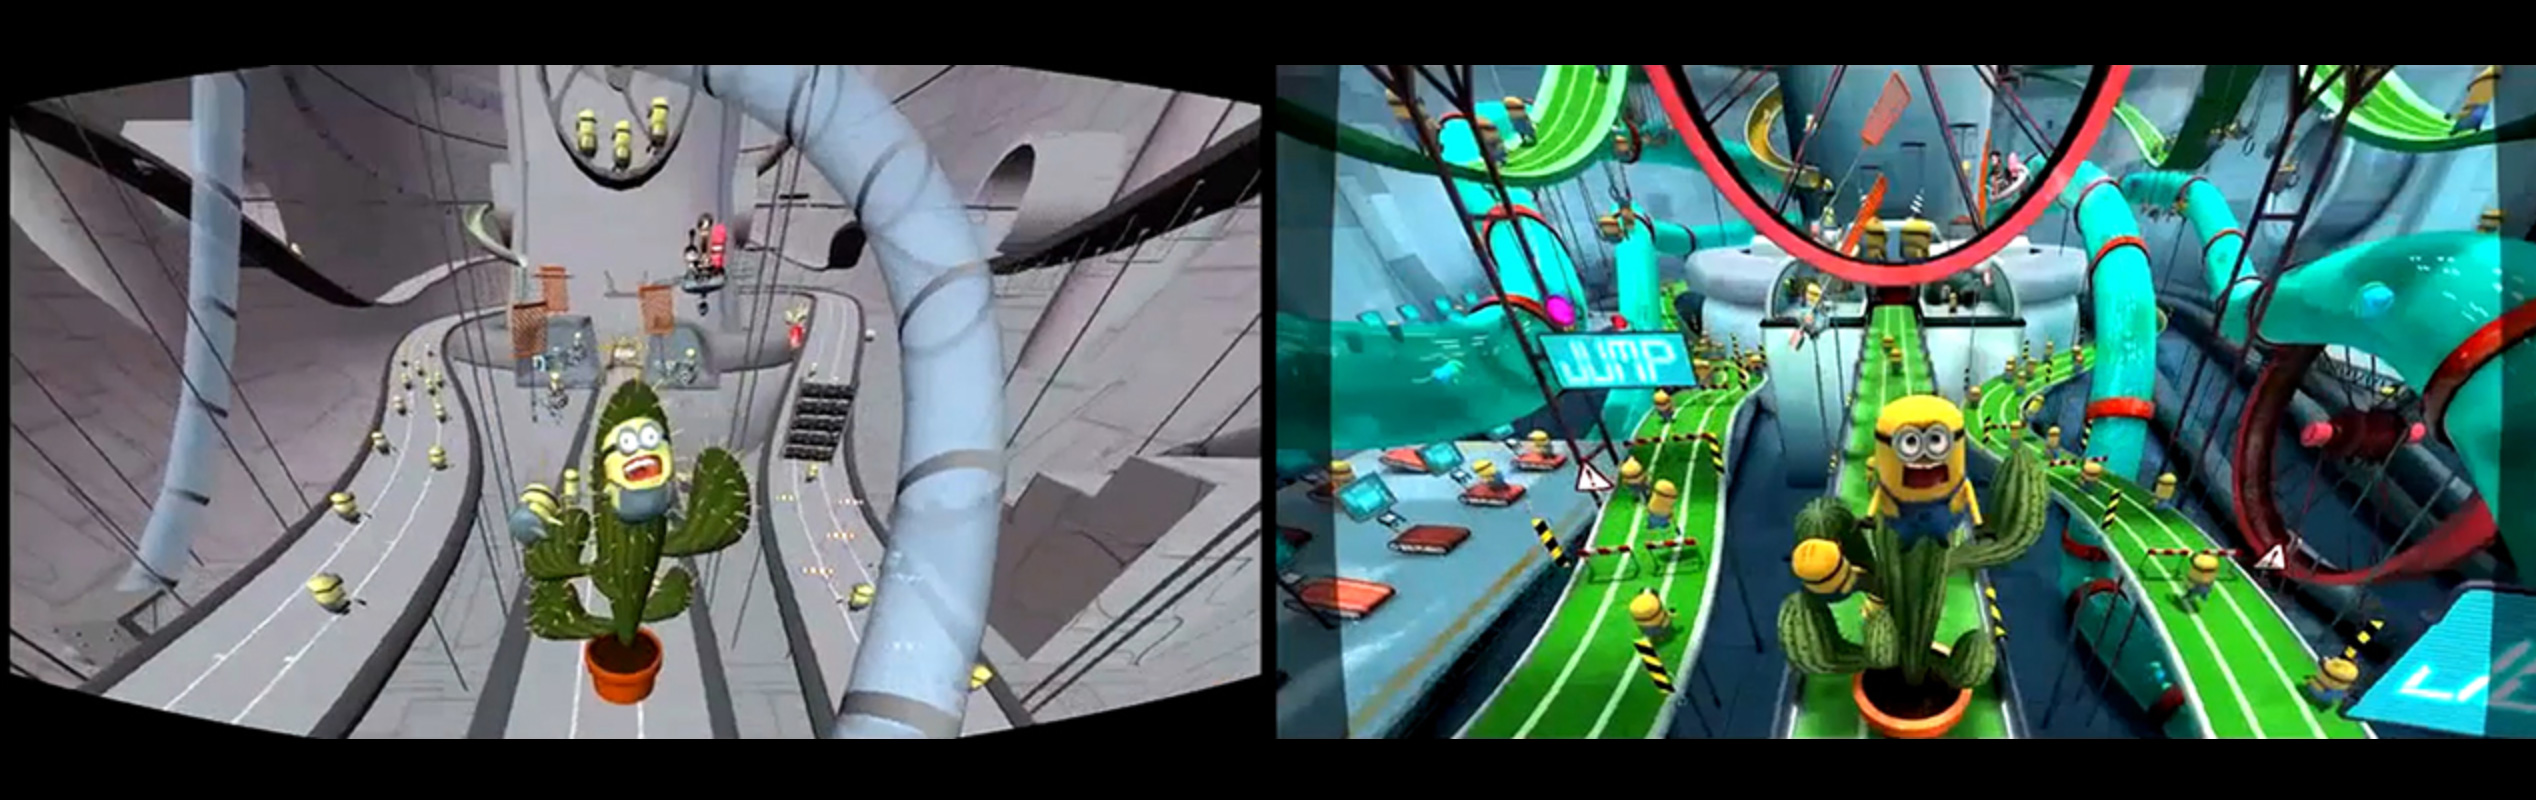 Despicable Me: Minion Mayhem 3D - Motion Simulation by The Third Floor (Universal Creative)